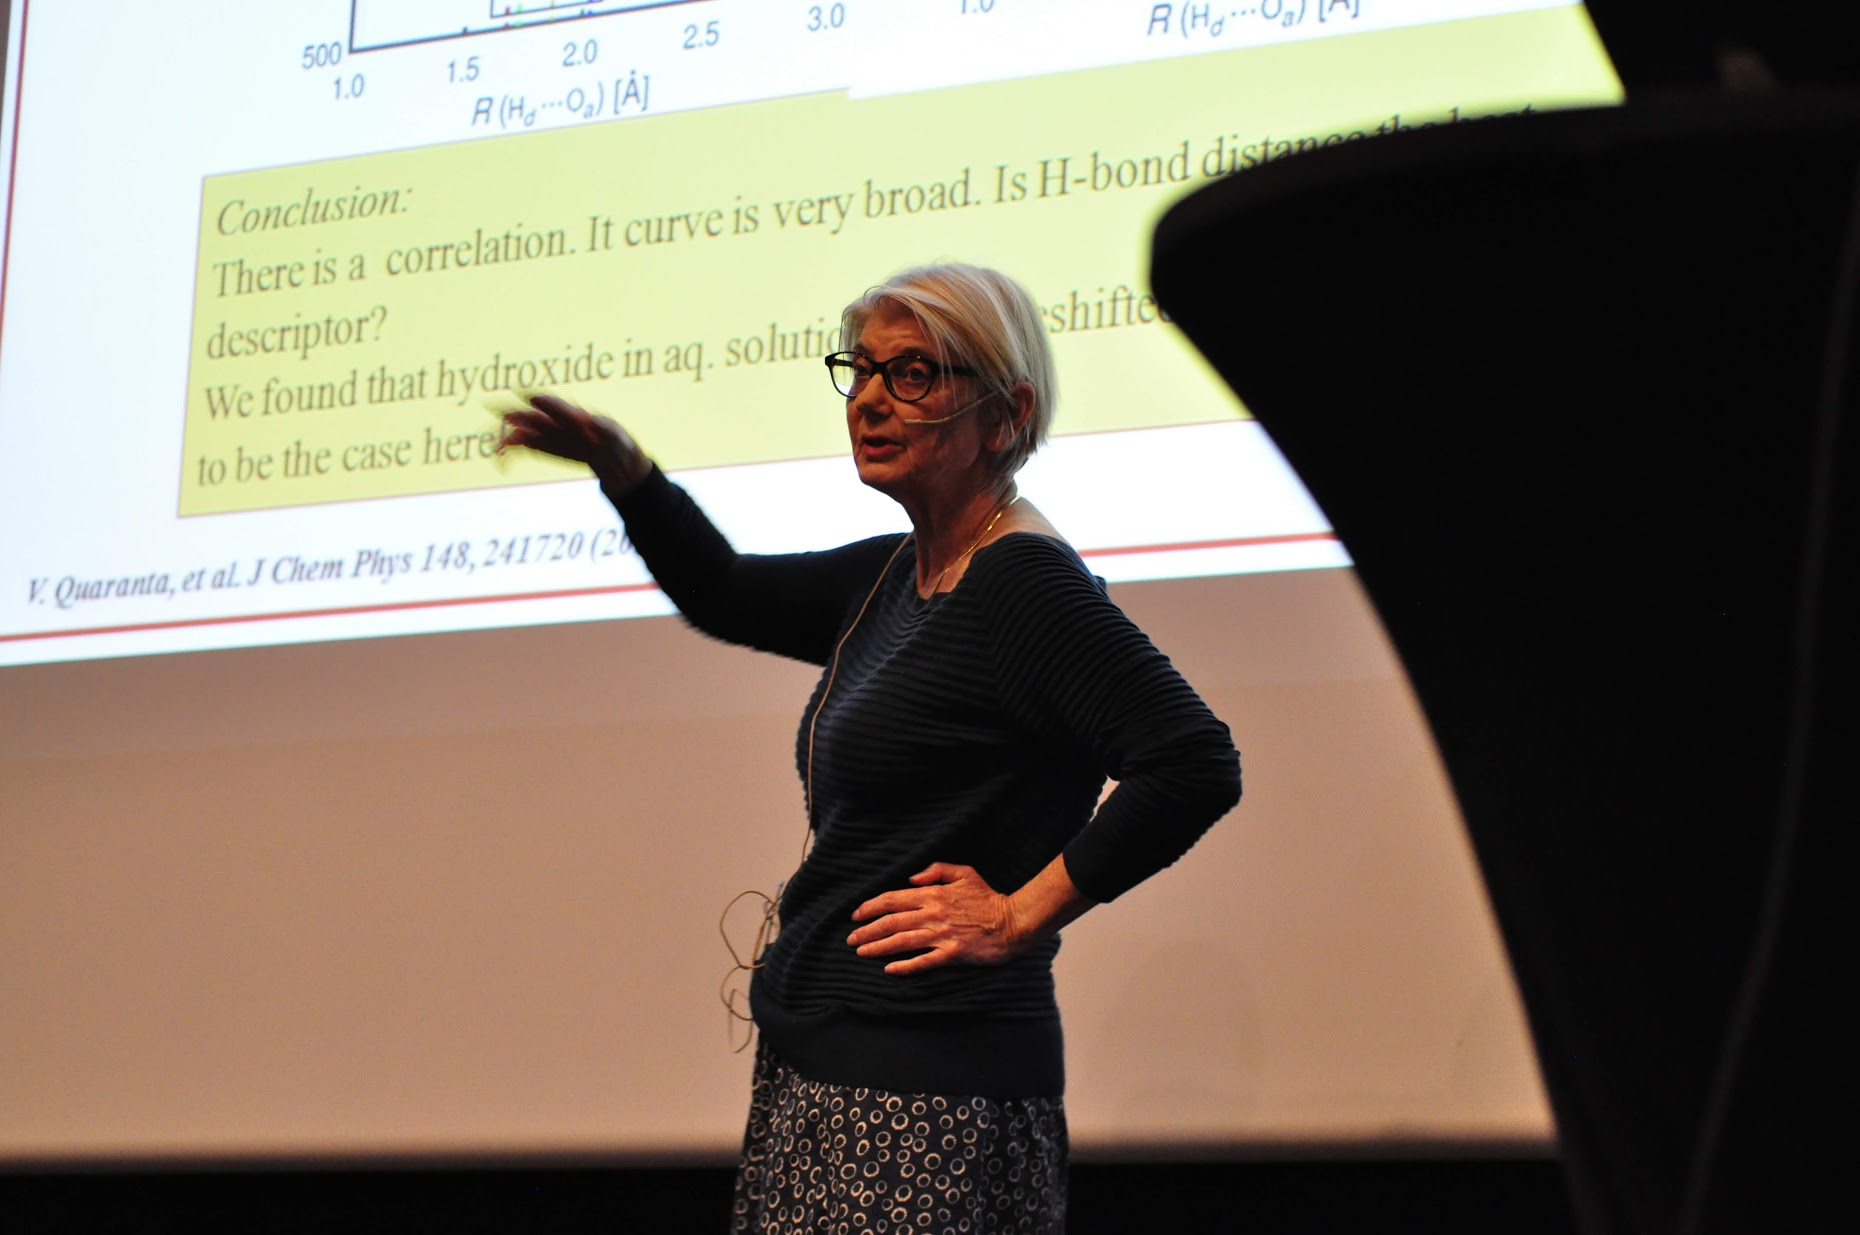 Kersti Hermansson presenting her plenary lecture. Photo: Luca Frediani